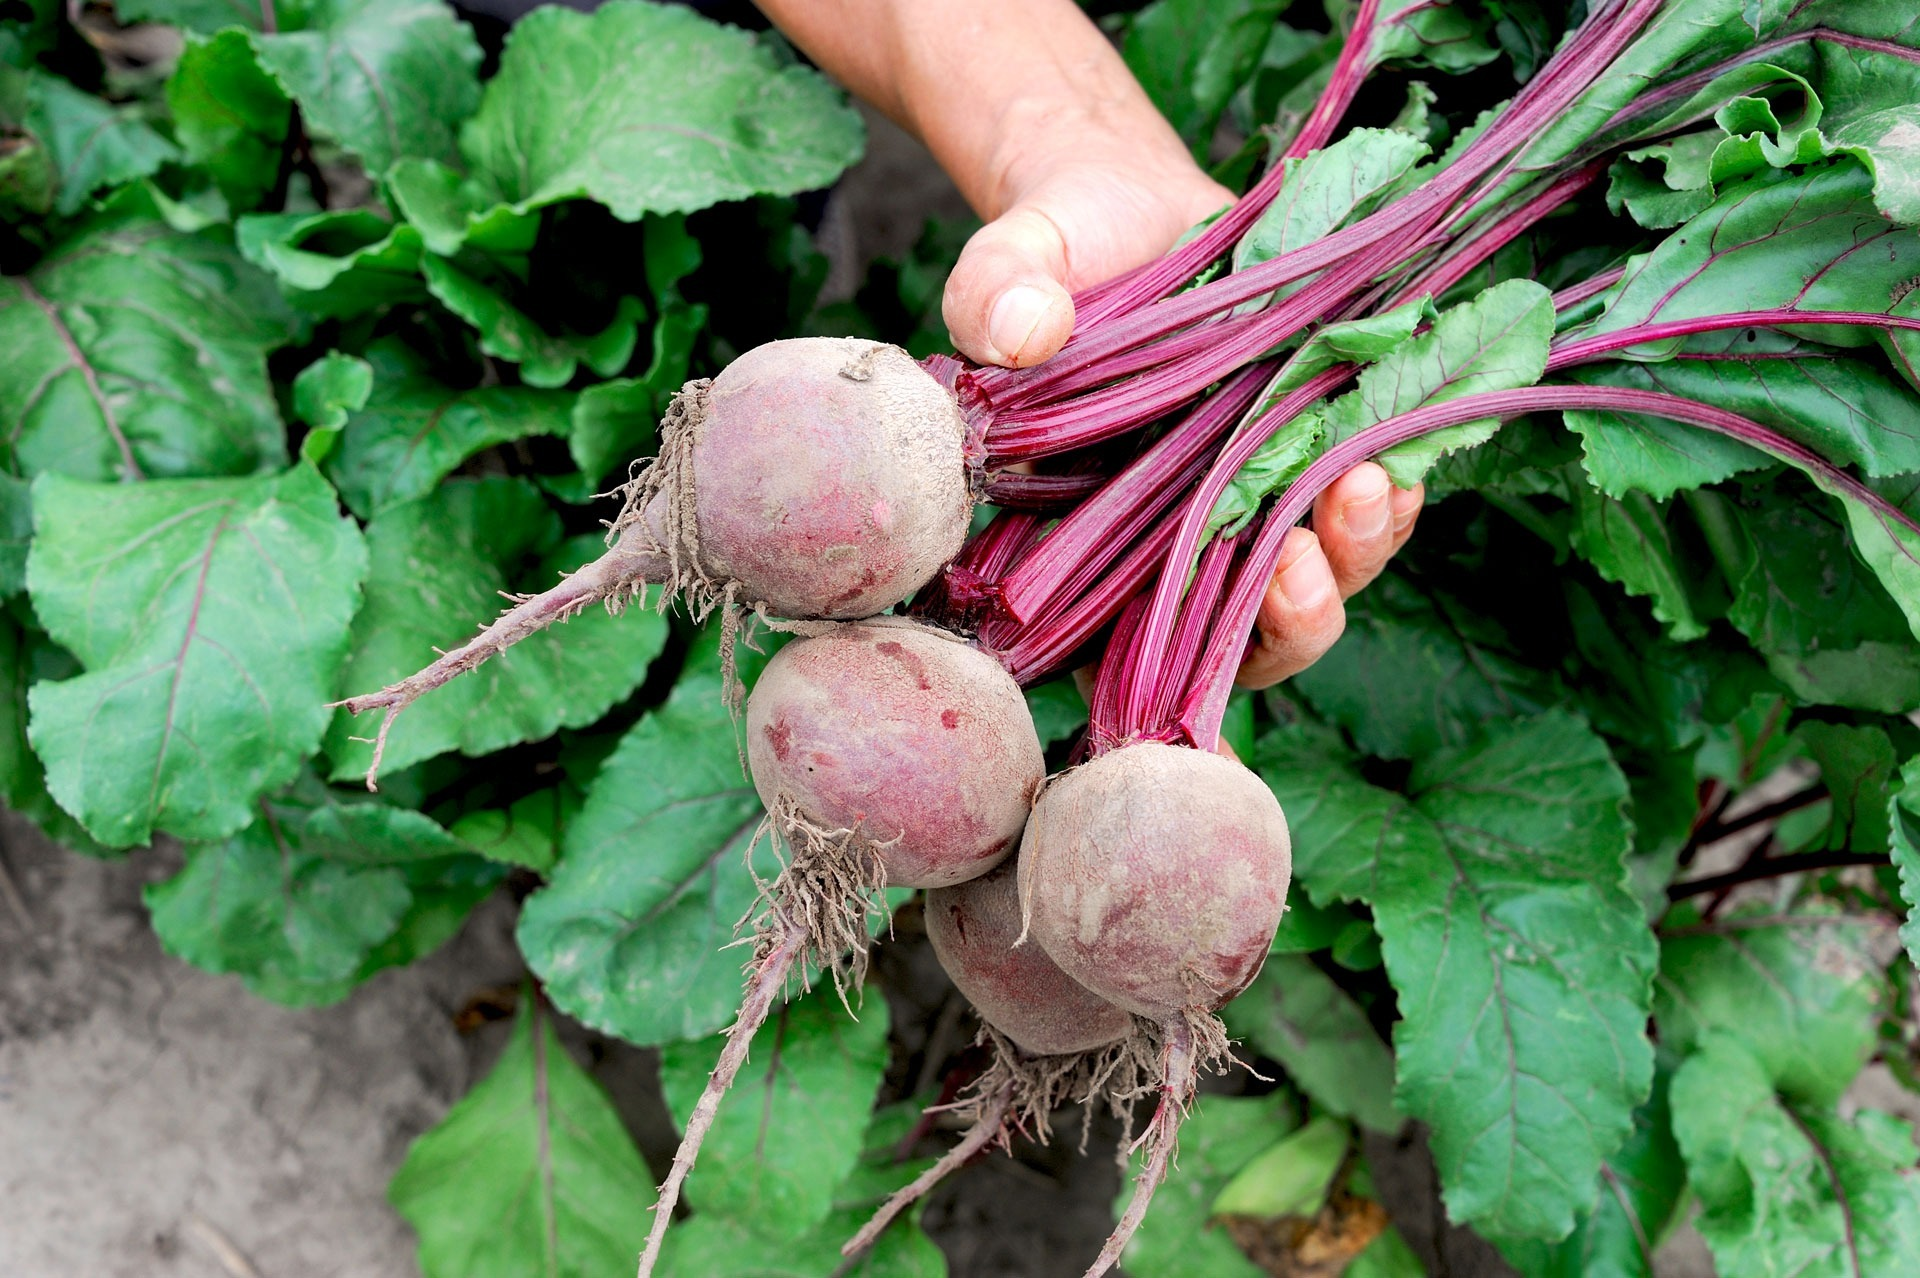 Freshly picked bunch of beets in hand